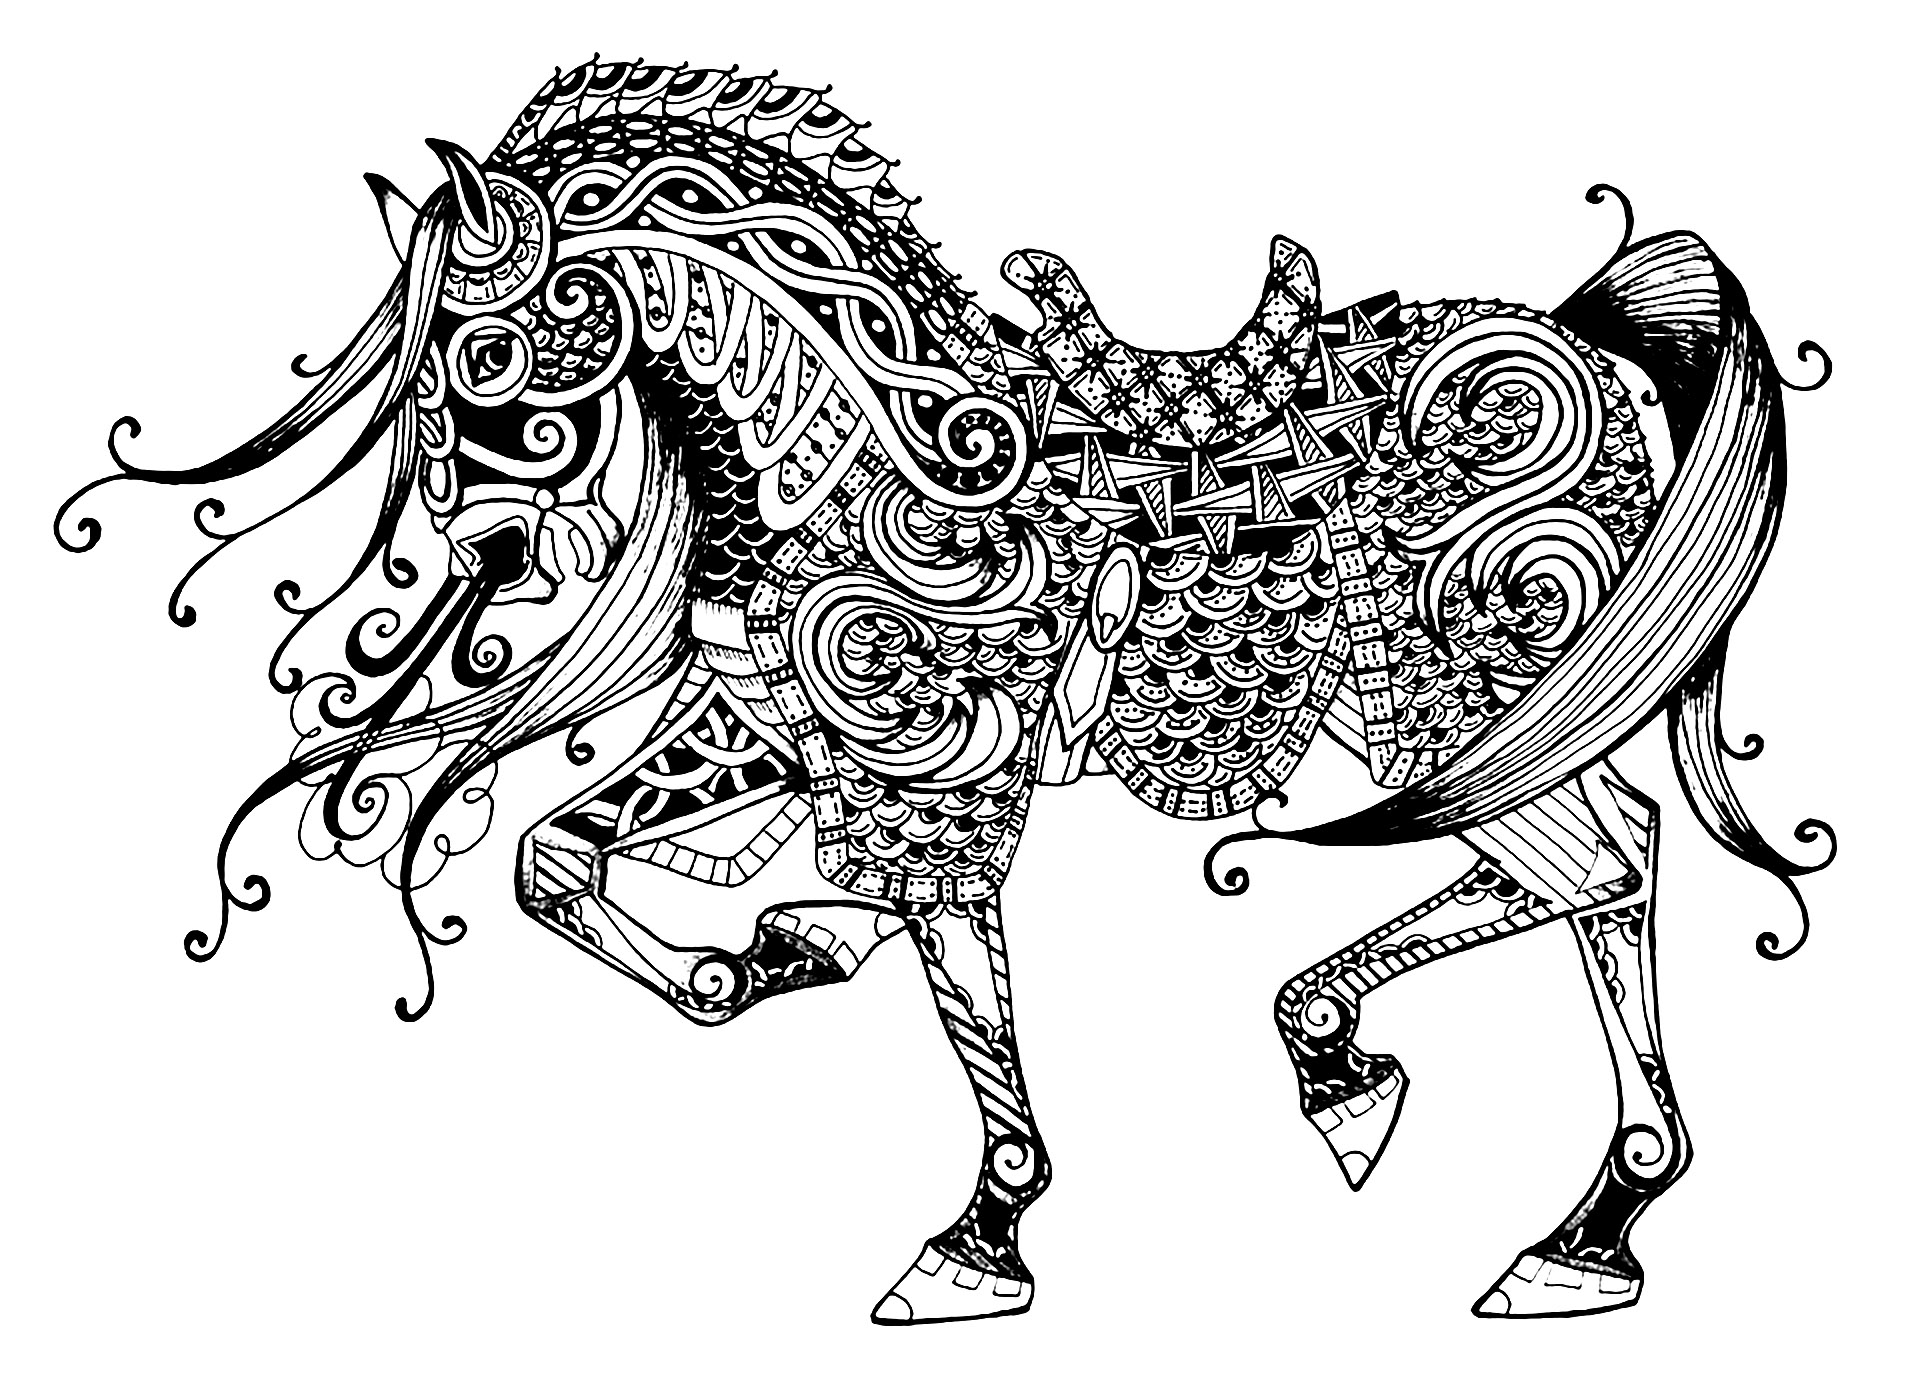 coloring page horse horse free to color for children trotting horse horses coloring horse page